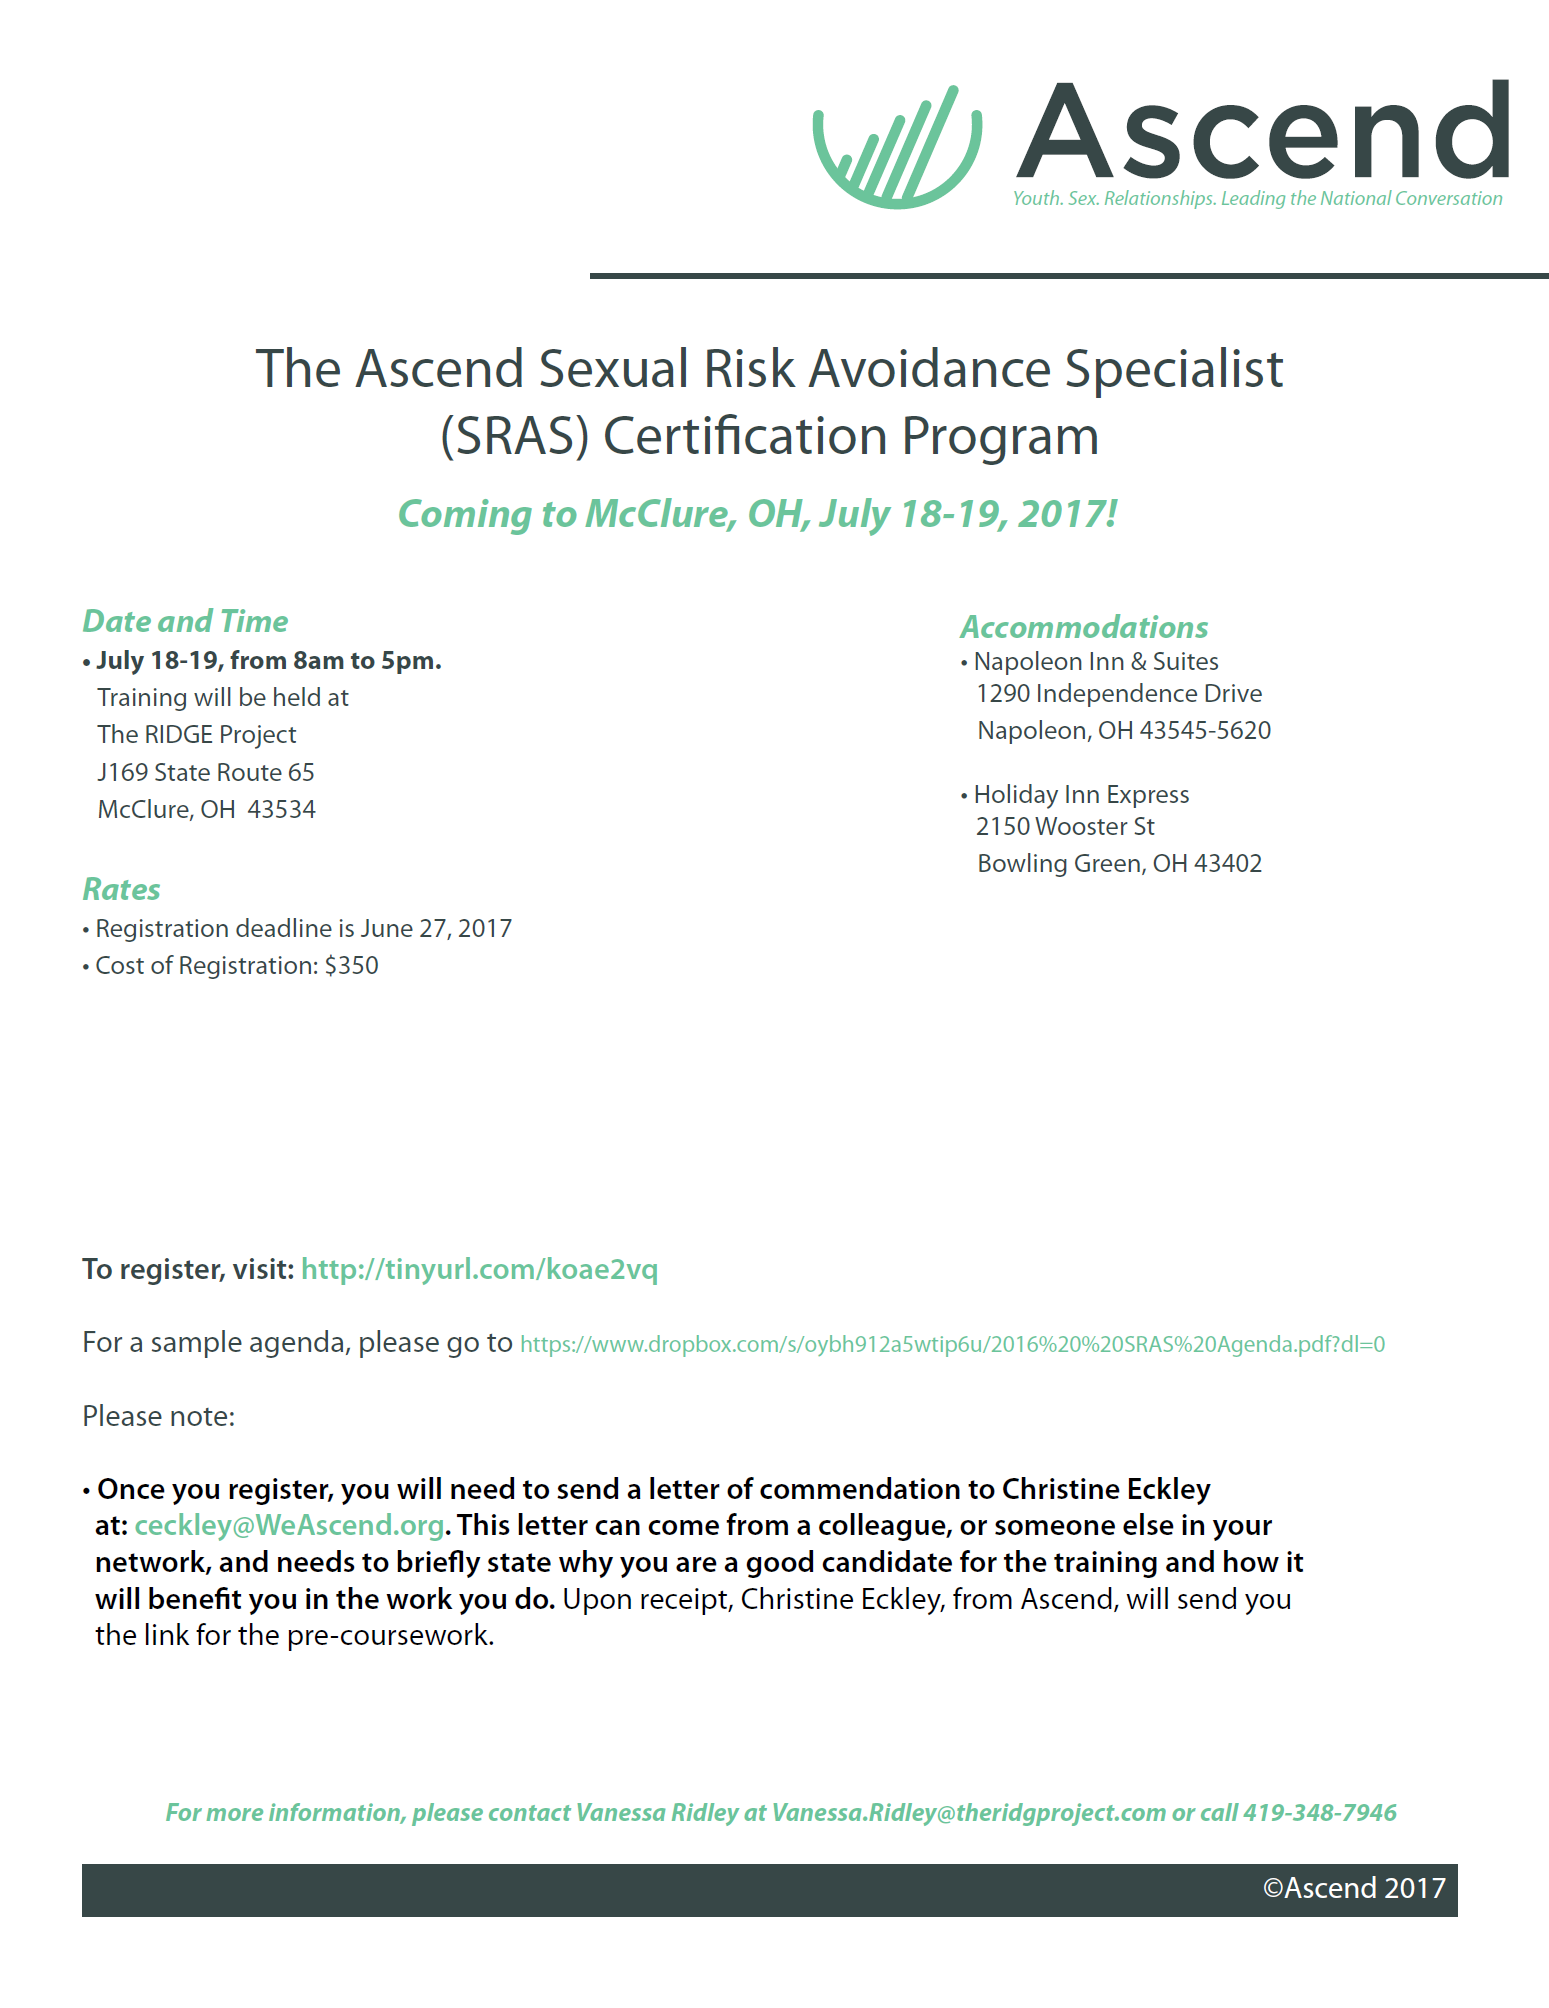 Ascend Sras Certification Training Mcclure Oh Tickets Tue Jul